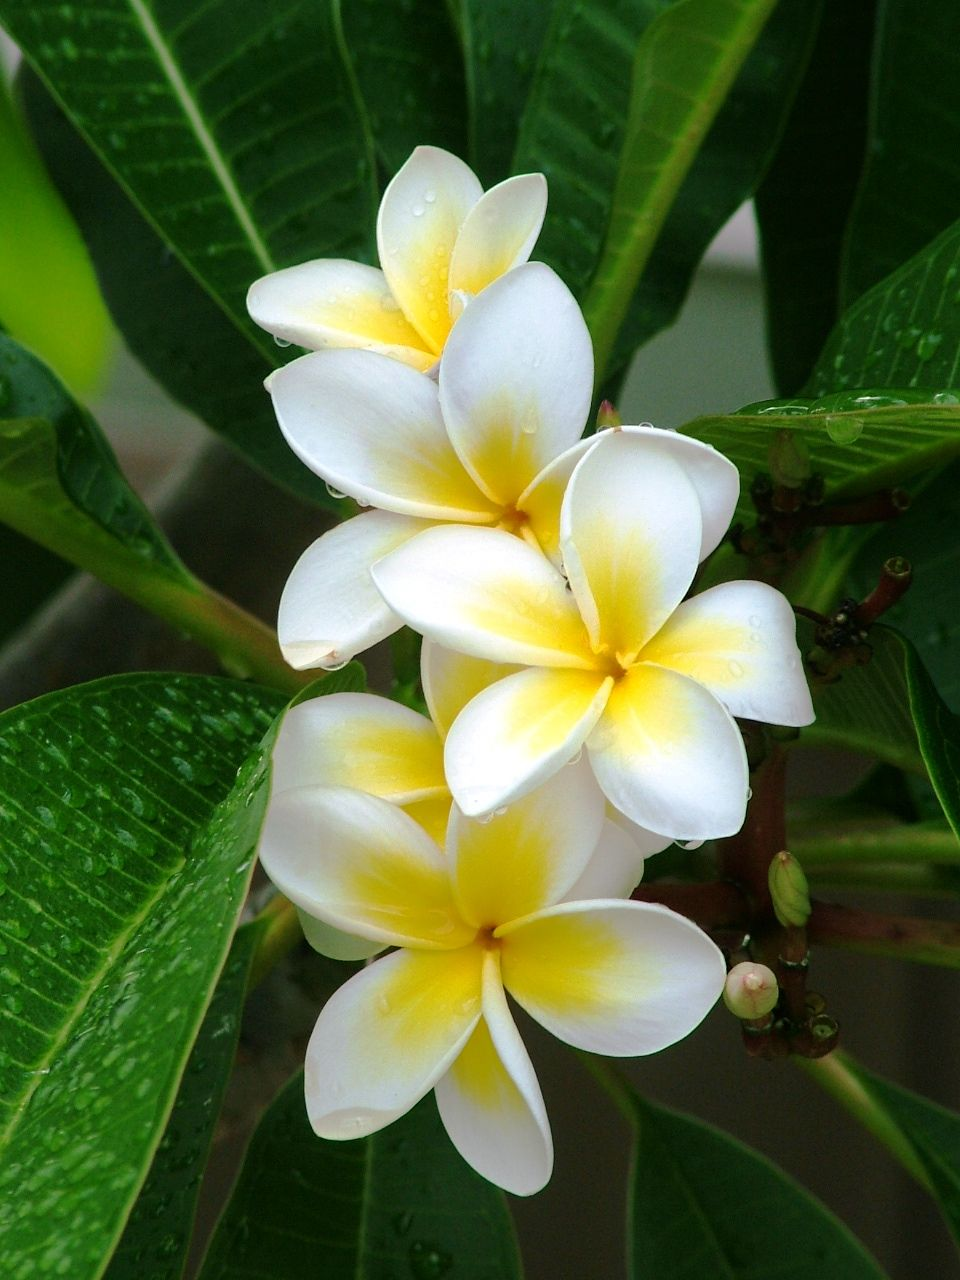 The amazing smell of this flower always reminds me of my holidays to the amazing smell of this flower always reminds me of my holidays to fiji izmirmasajfo